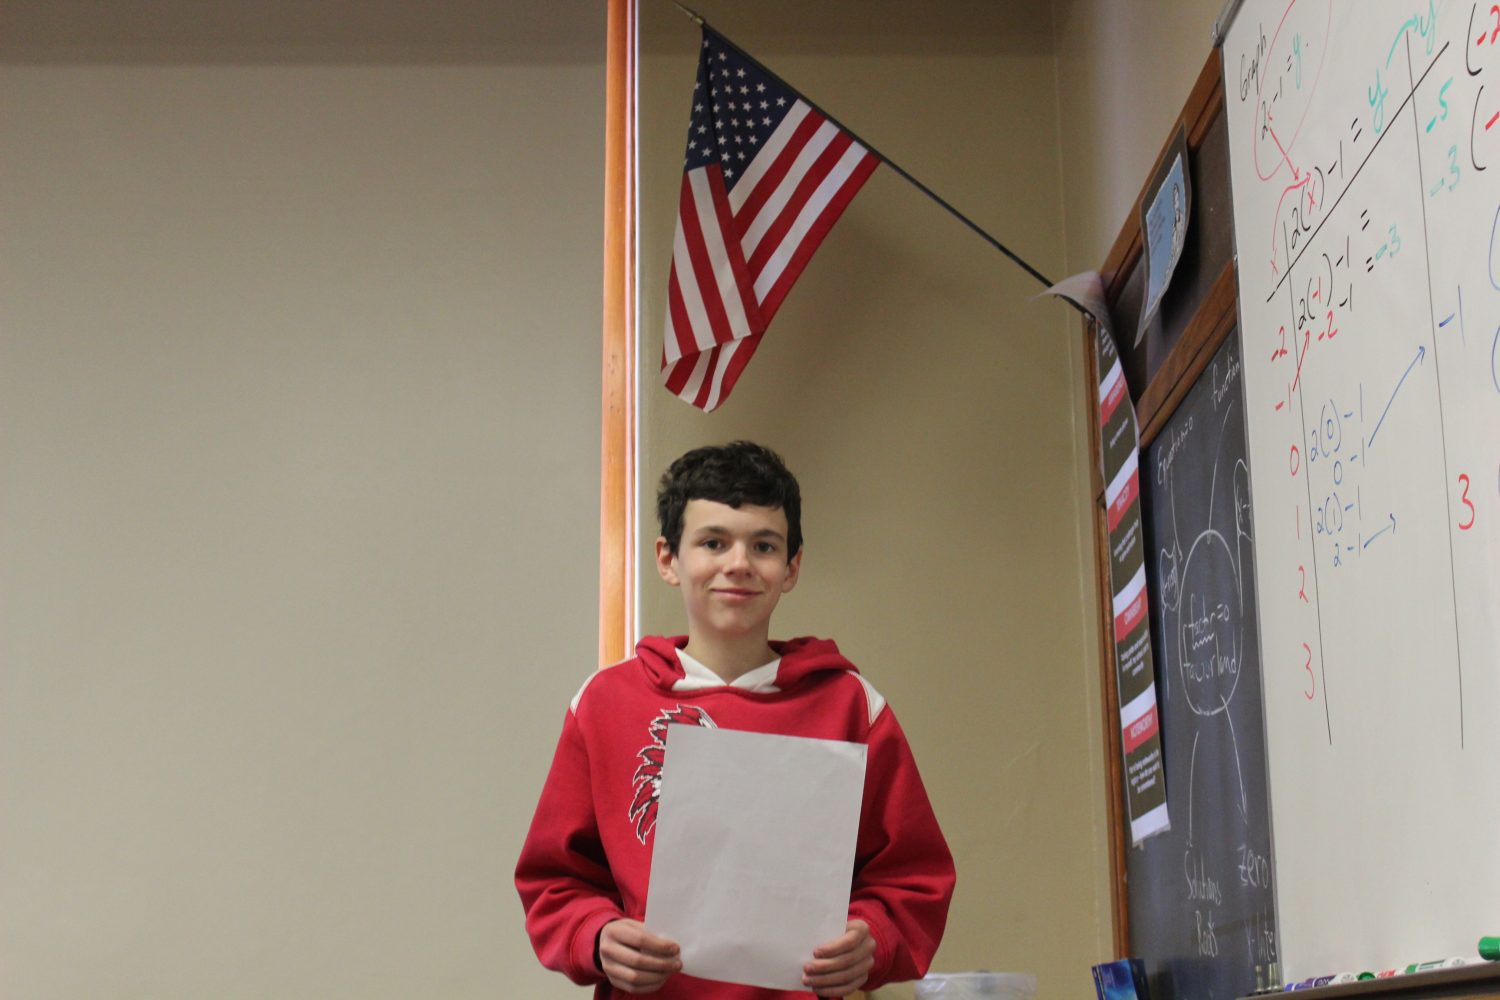 Gavin Huckaby leads Eaton High School in saying the Pledge of Allegiance